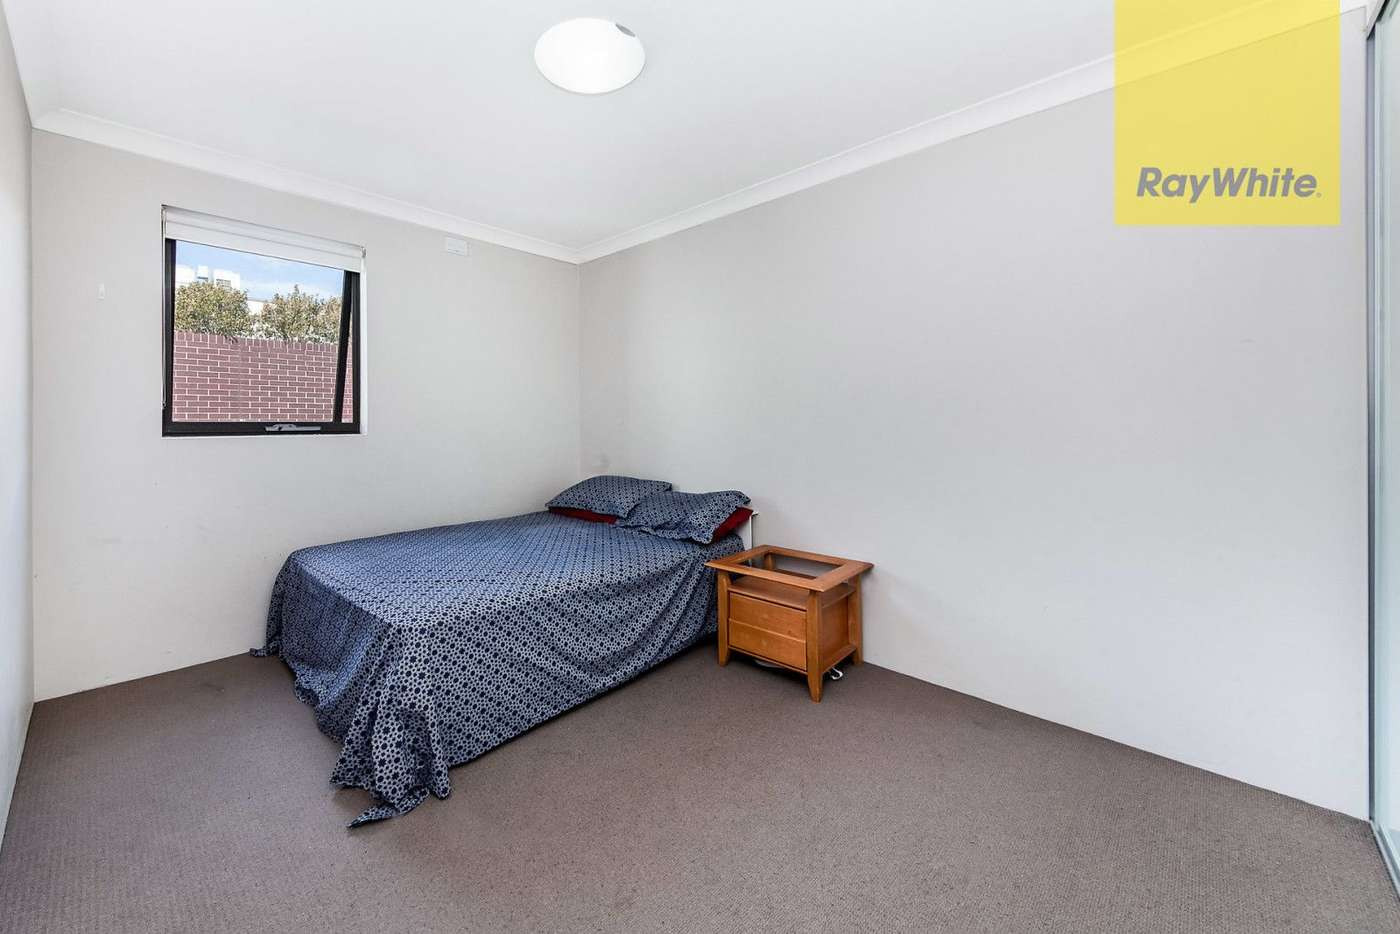 Fifth view of Homely unit listing, 23/121-127 Railway Parade, Granville NSW 2142